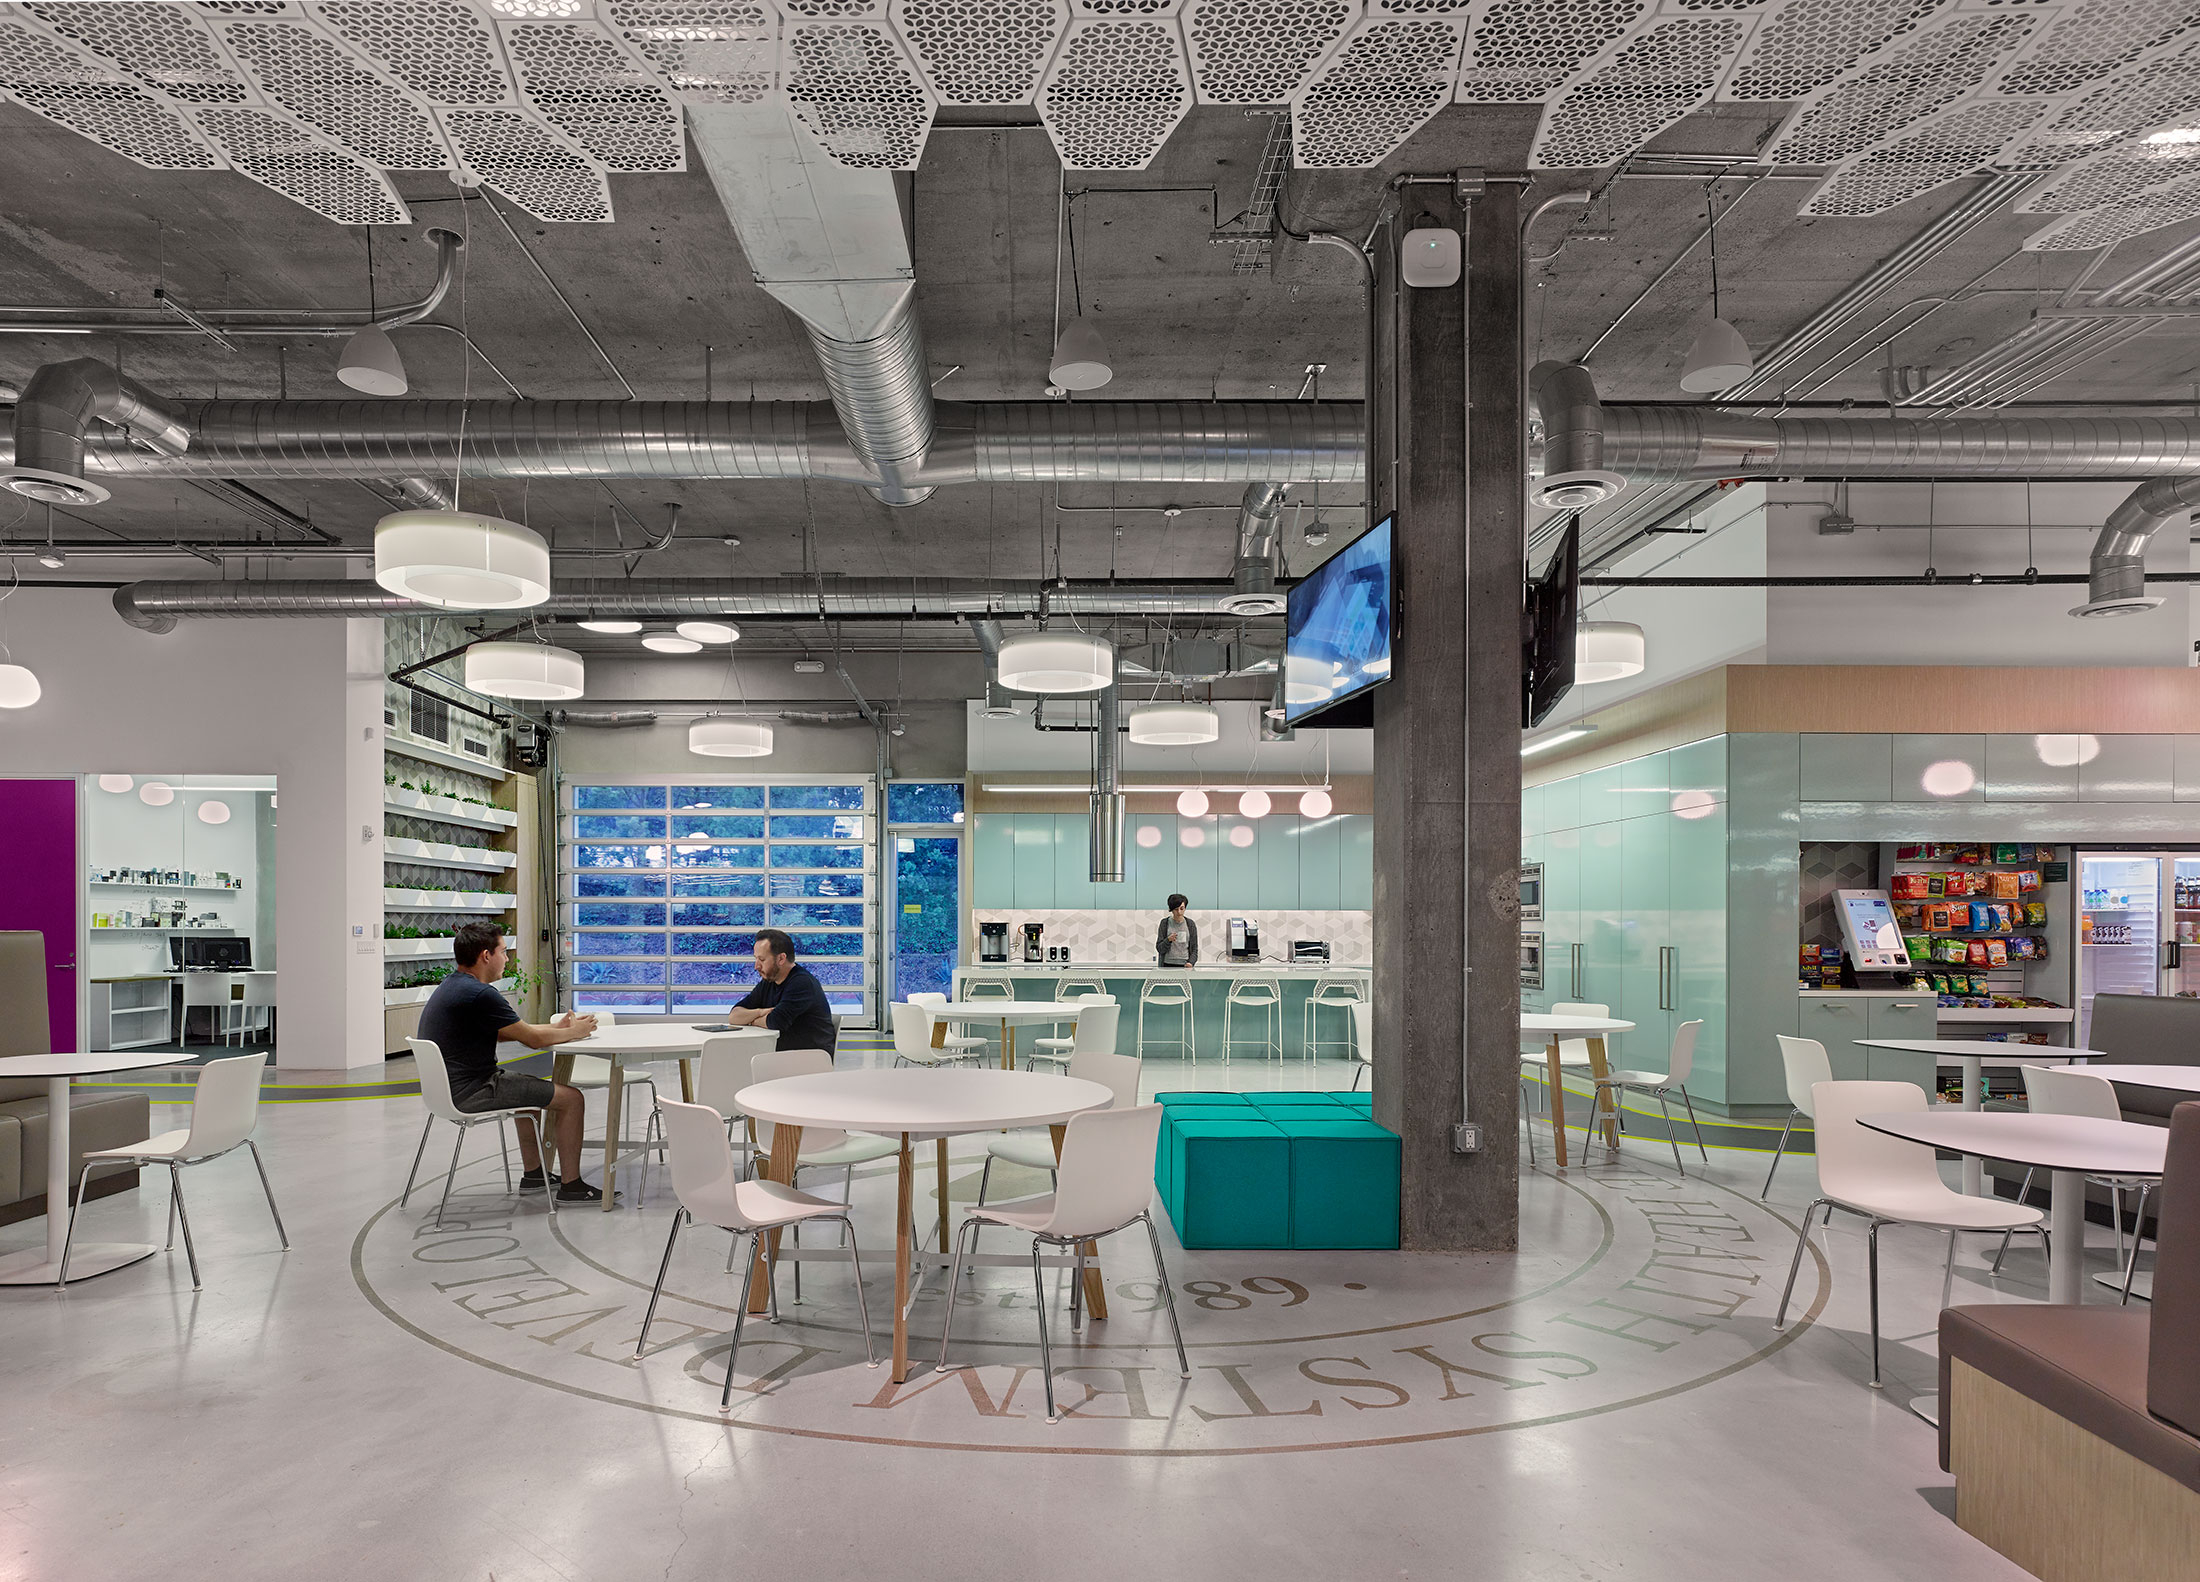 modern-architecture-commercial-interiors-workplace-office-branded-custom-fabrication-california-shubindonaldson-murad-headquarters-10